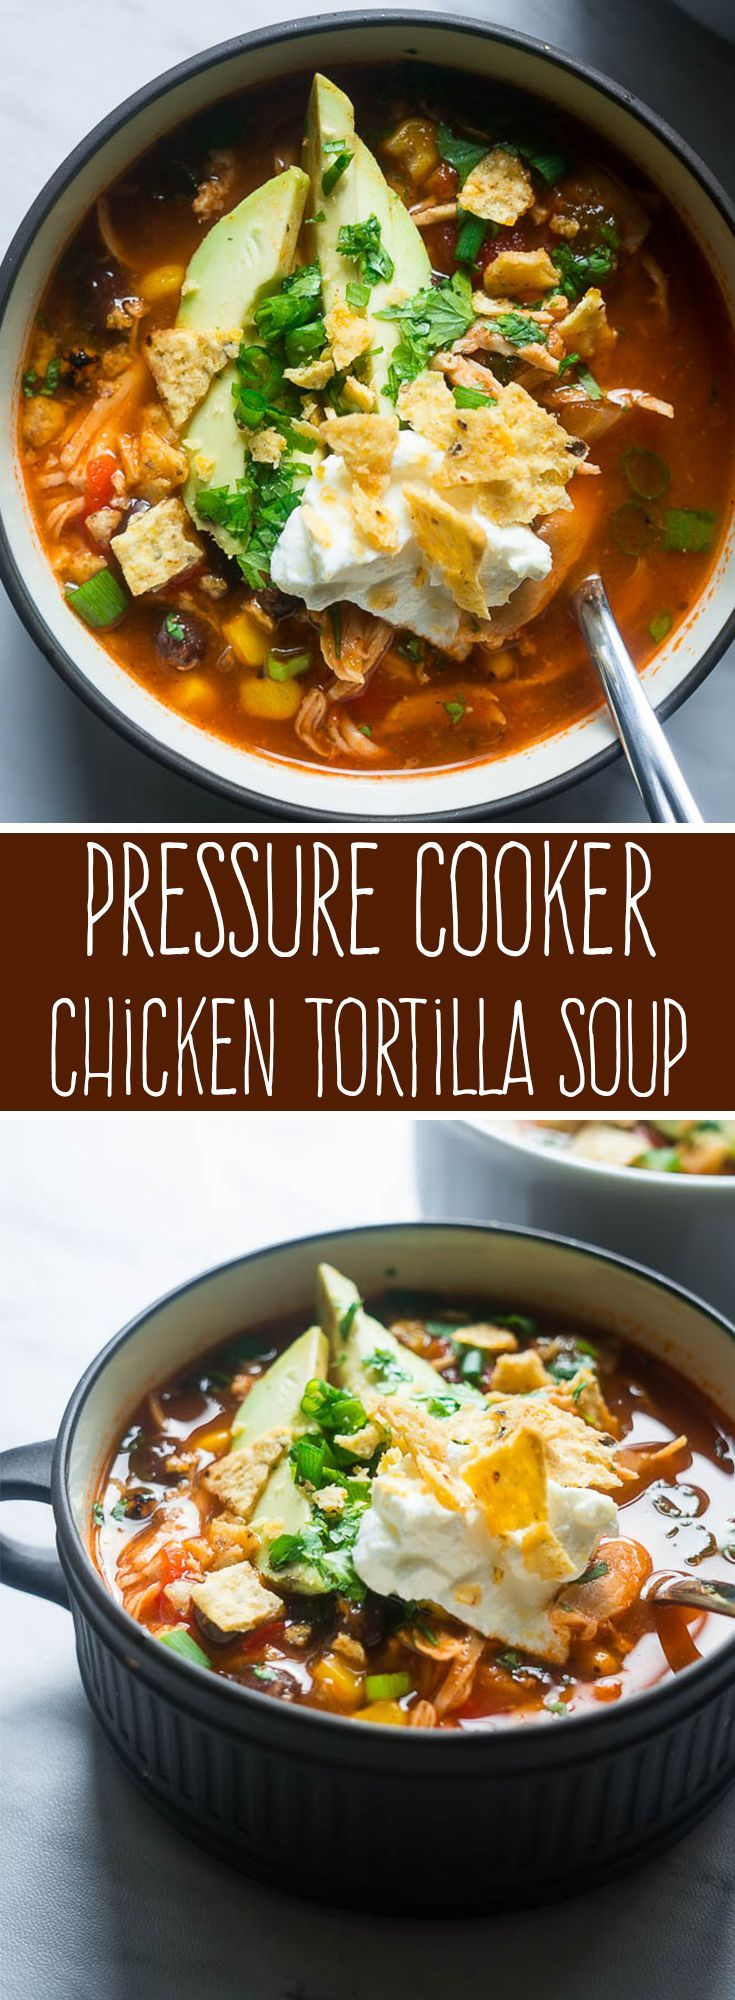 Pressure Cooker Chicken Tortilla Soup. All in one pot and bursting with flavor, this AhhMazing Pressure Cooker Chicken Tortilla Soup will NOT let you down.